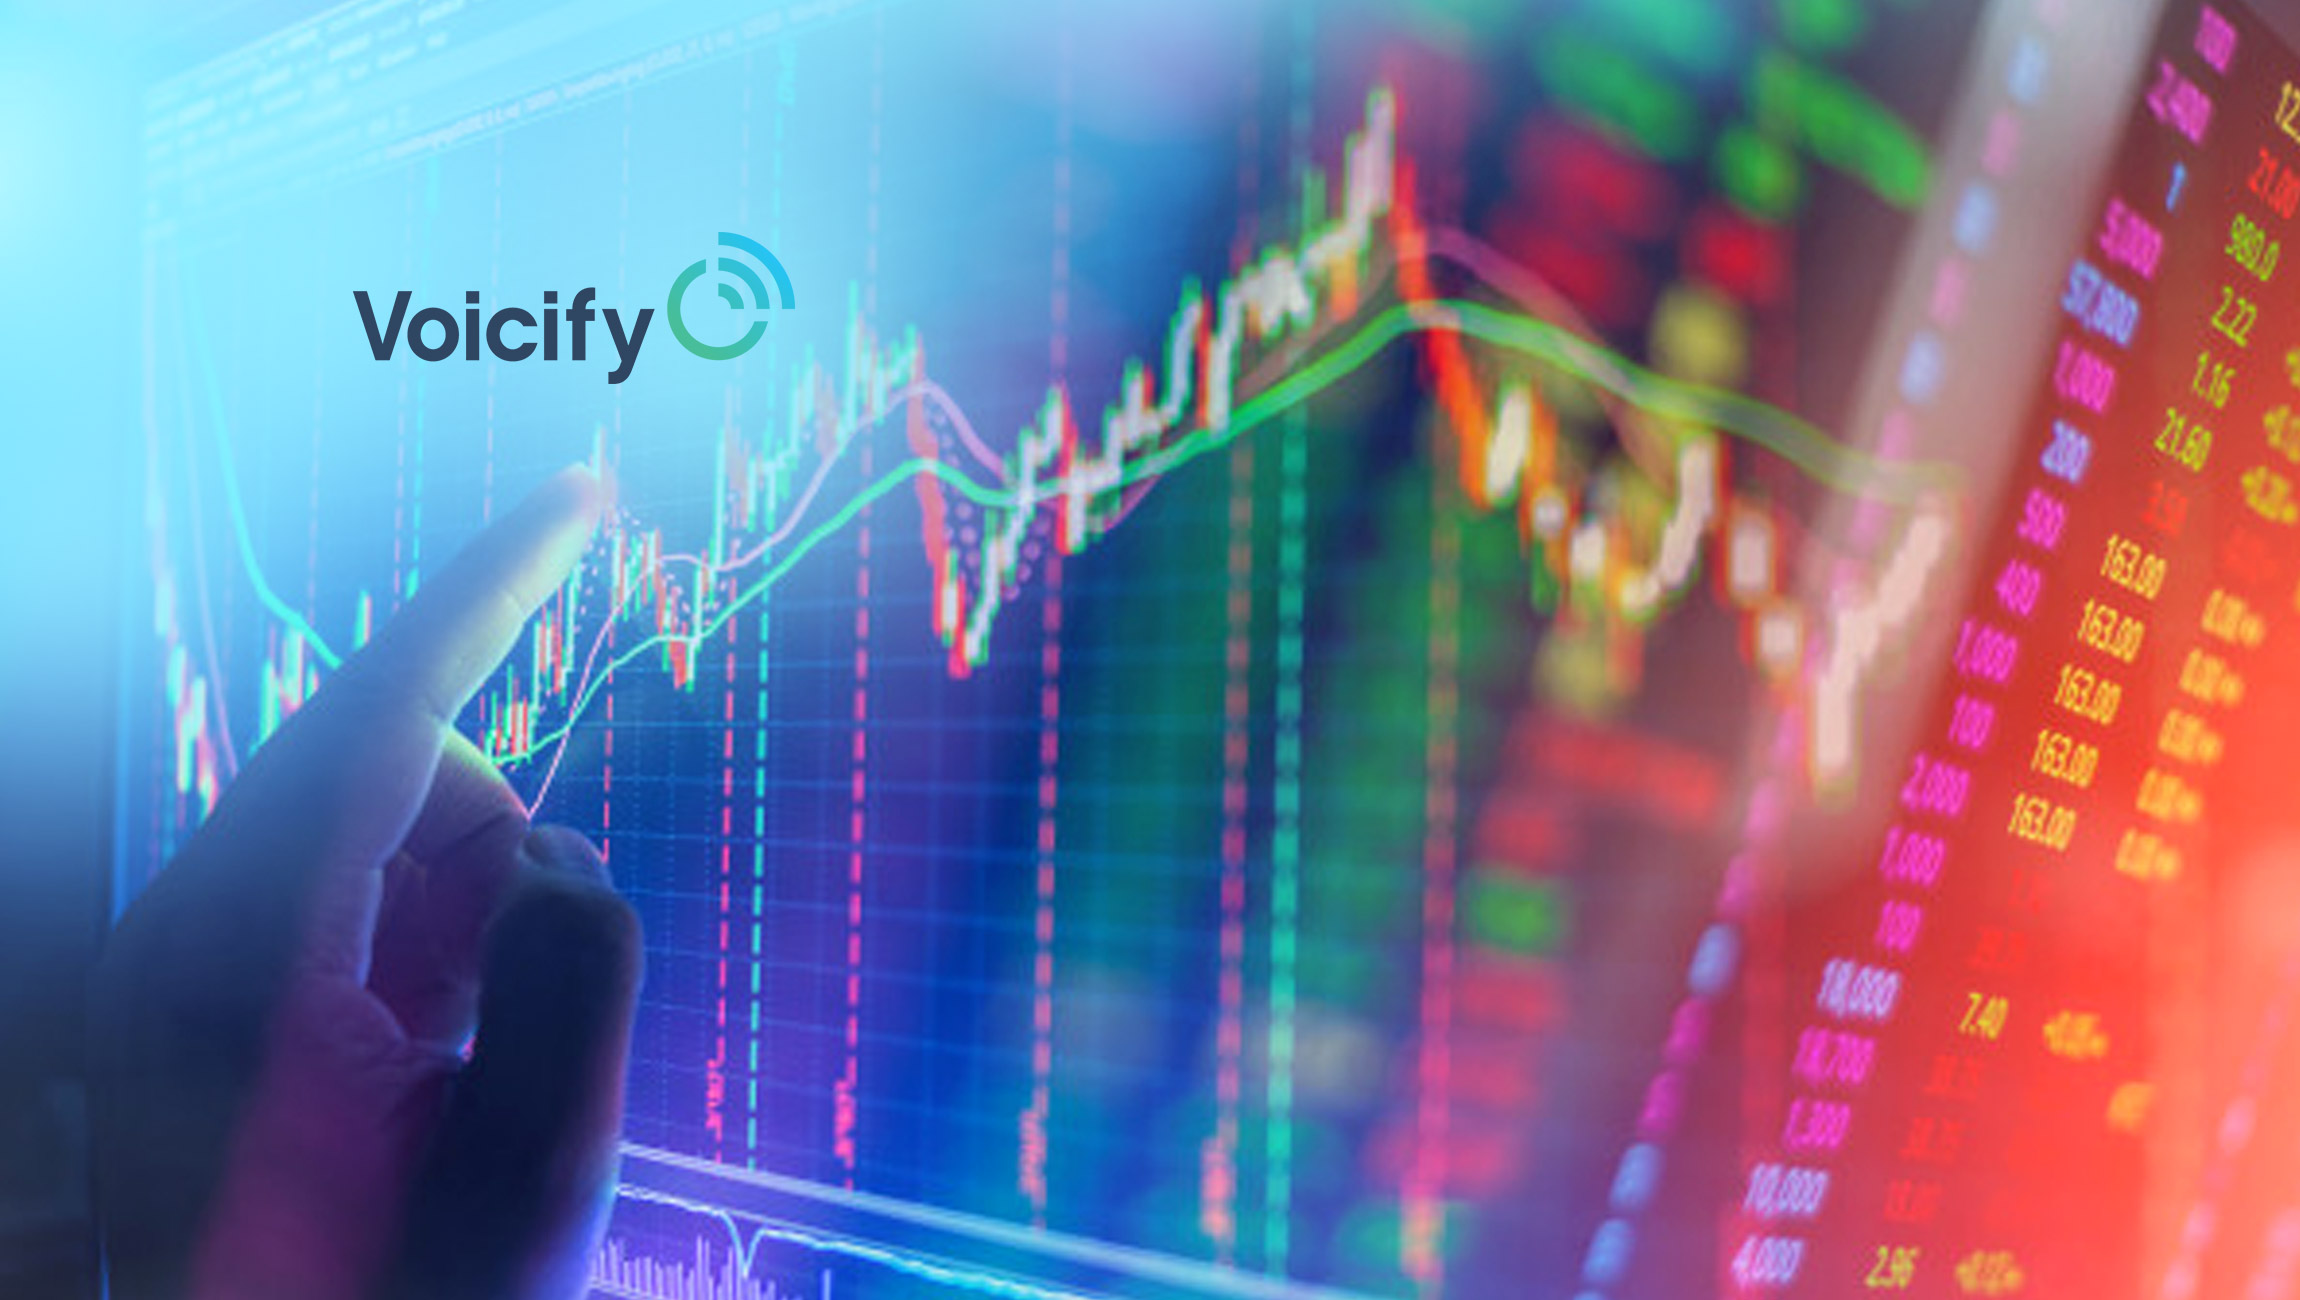 Voicify, LLC Receives Second Round of Funding from Multiple Investors